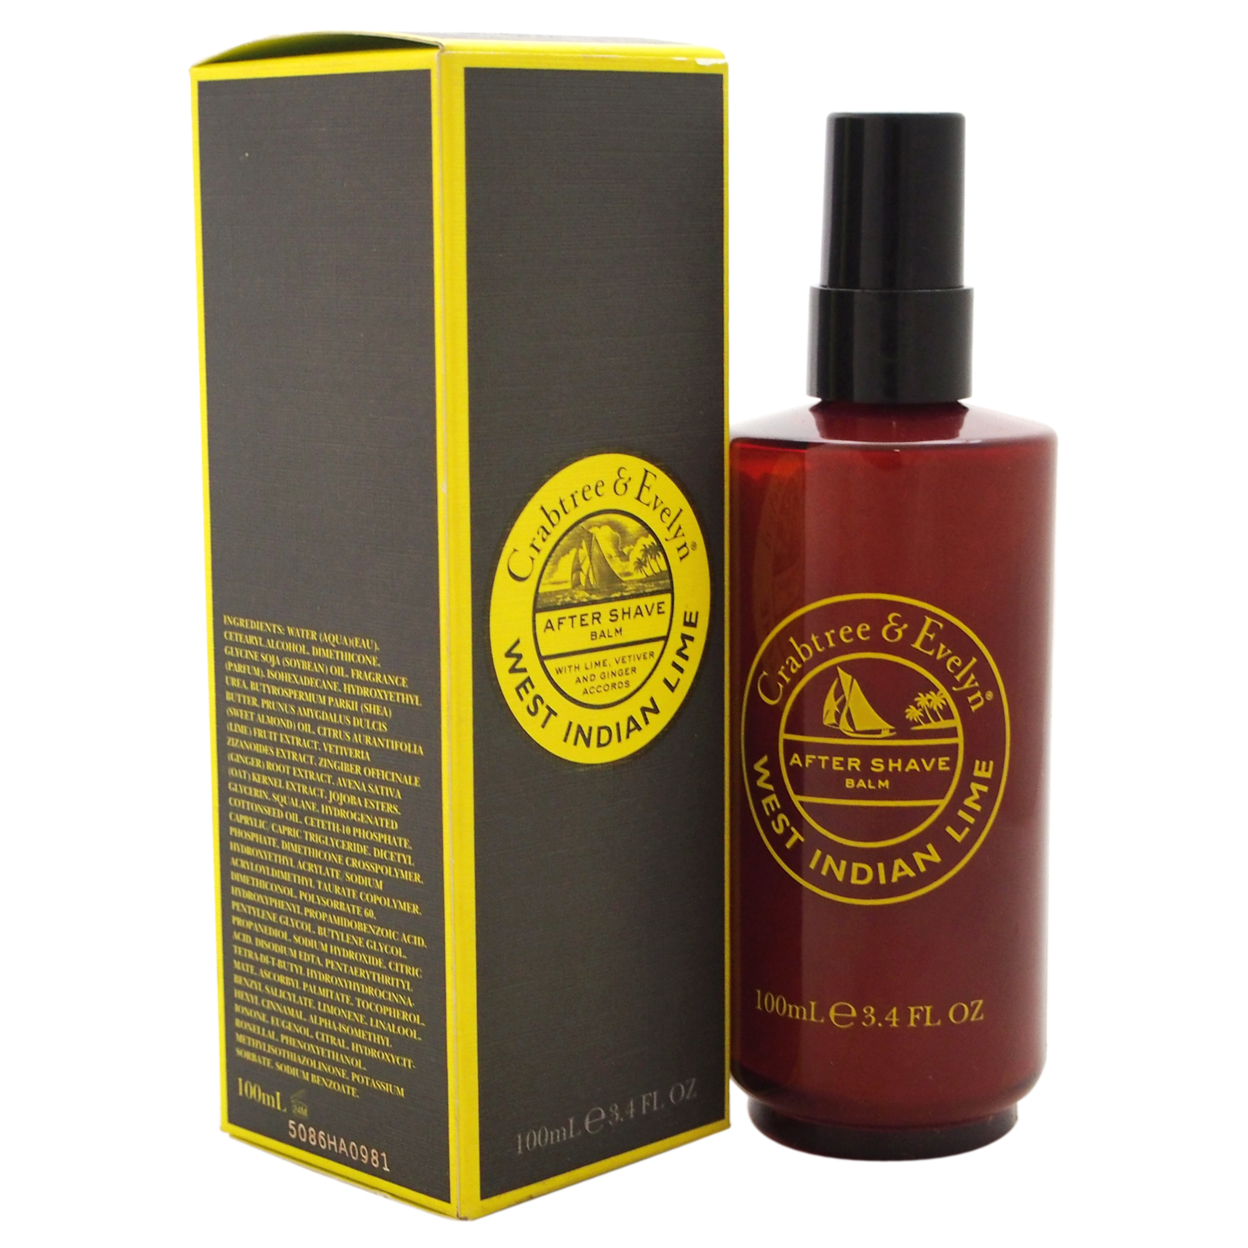 West Indian Lime After Shave Balm by Crabtree & Evelyn for Men - 3.4 oz After Shave Balm 5898e1a8c98fc450900eca5d